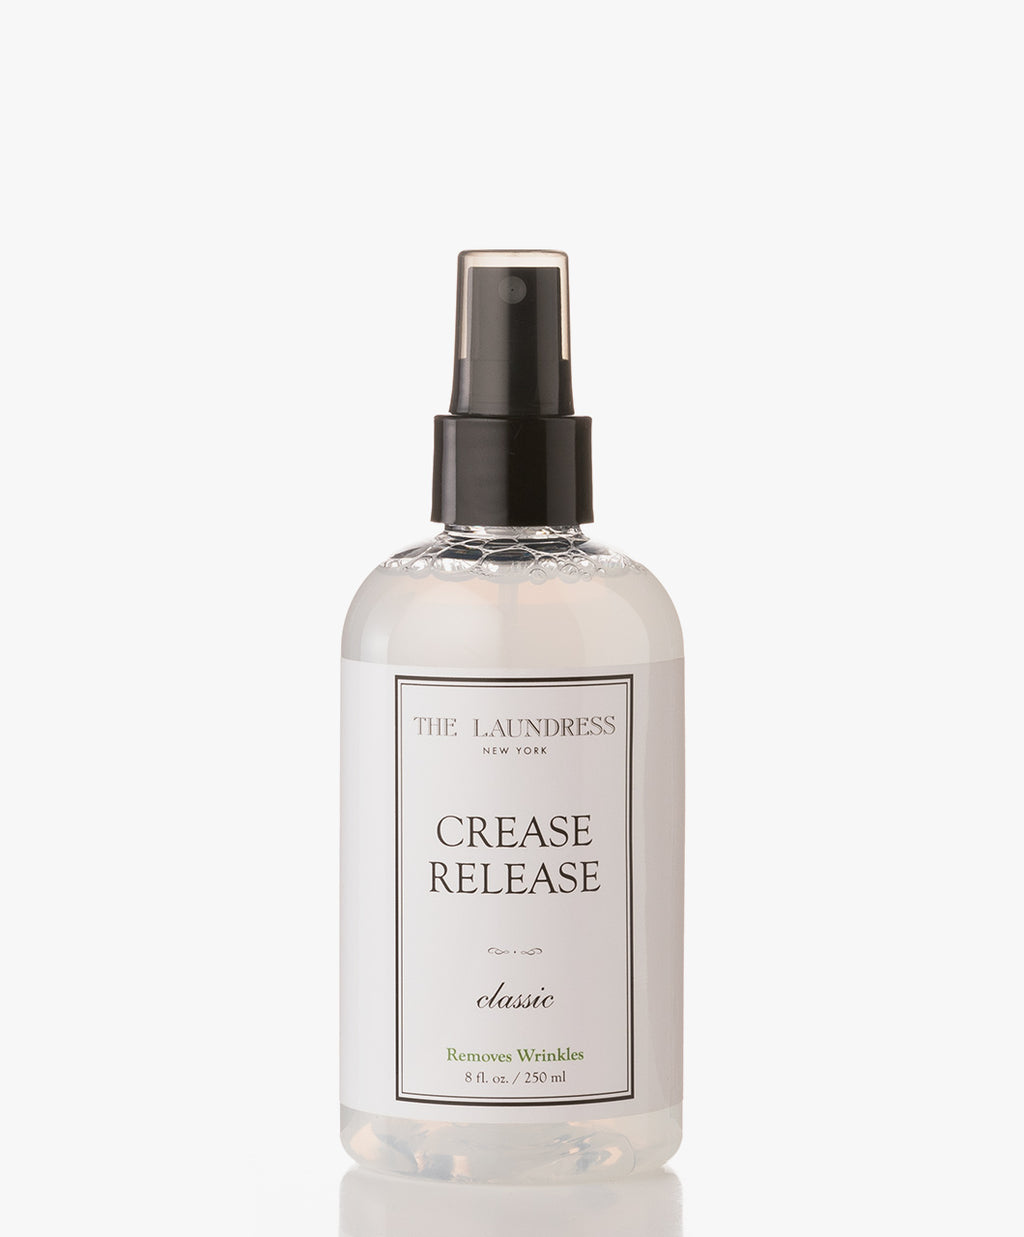 The Laundress Crease Release 8oz - LittleLeafBaby